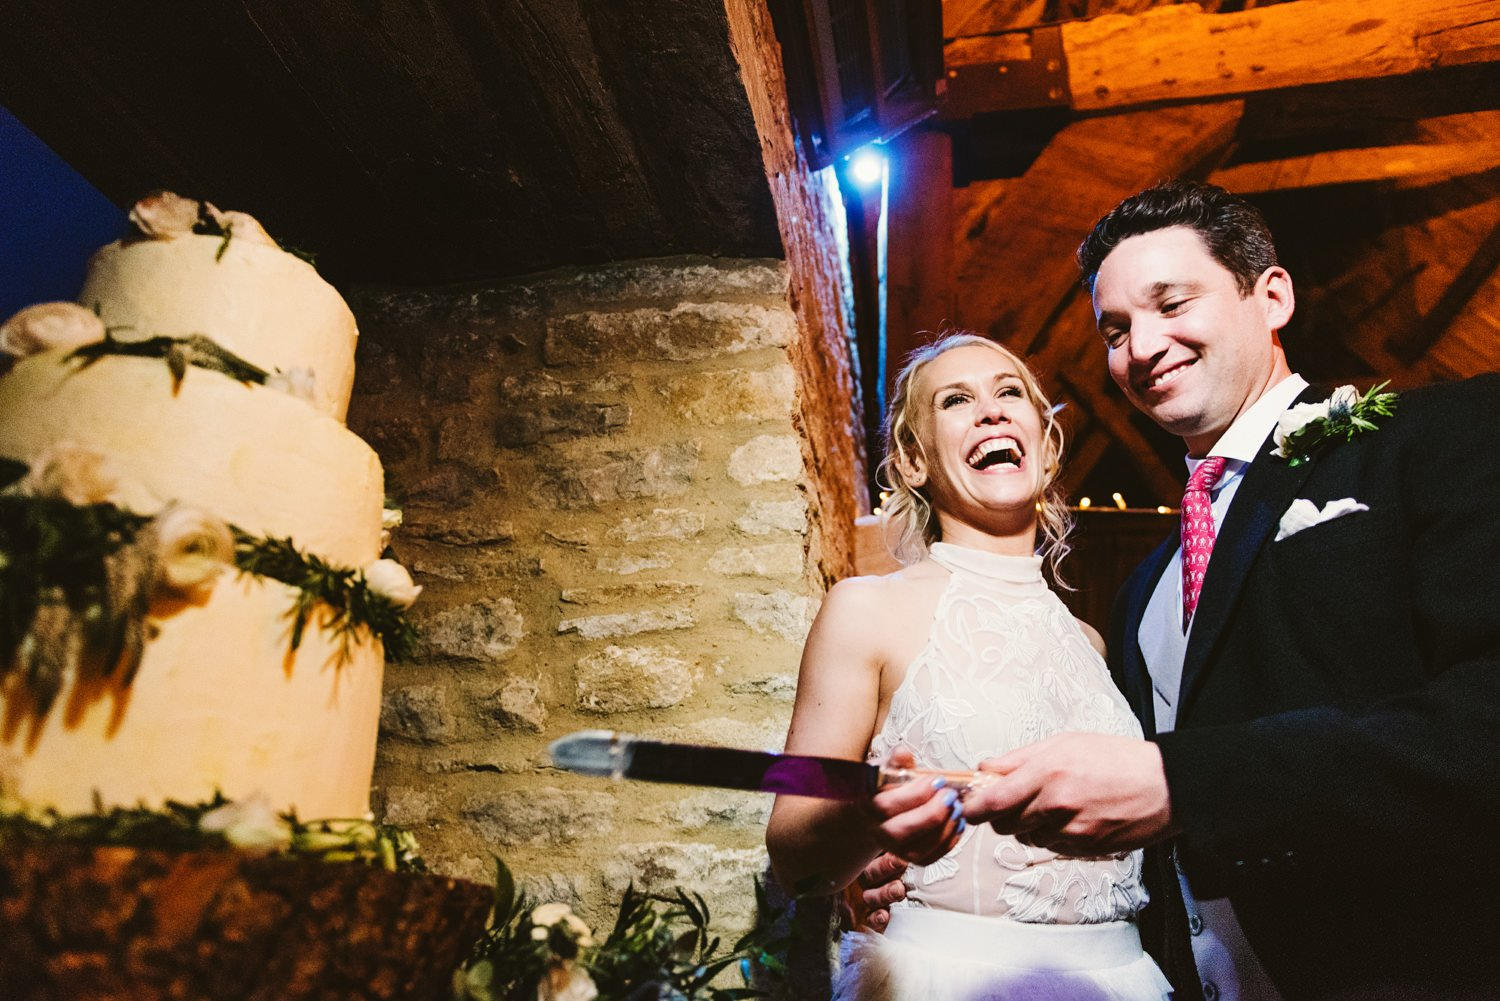 tythe-barn-wedding-photography_-14